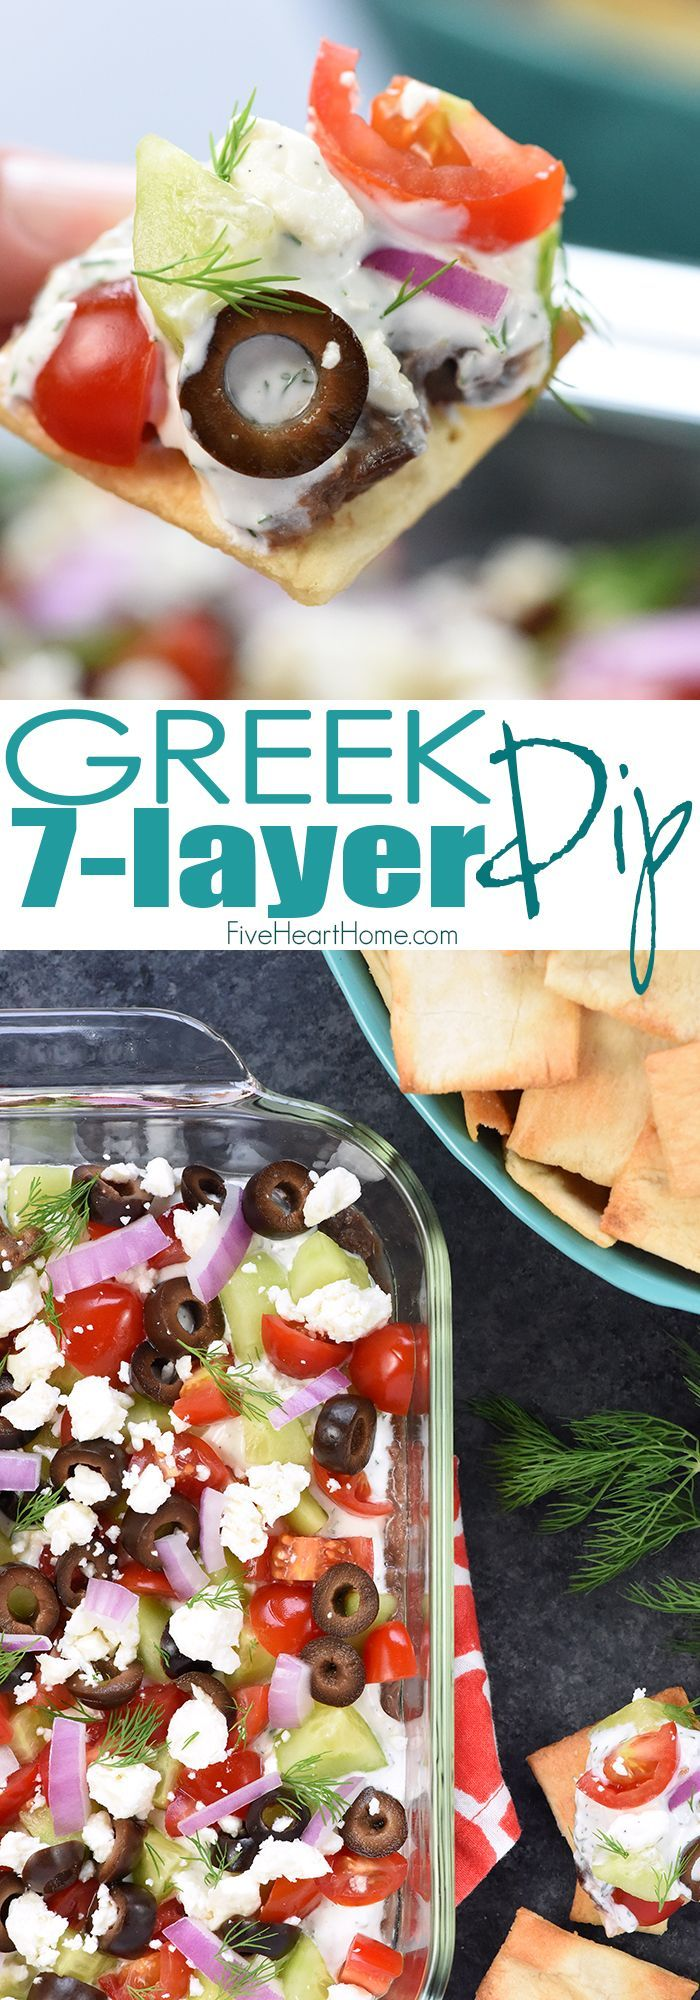 Greek 7-Layer Dip ~ a Mediterranean spin on the beloved, classic recipe, with layers of hummus, dill-infused Greek yogurt, tomatoes, cucumbers, black olives, red onion, and feta cheese! | FiveHeartHome.com